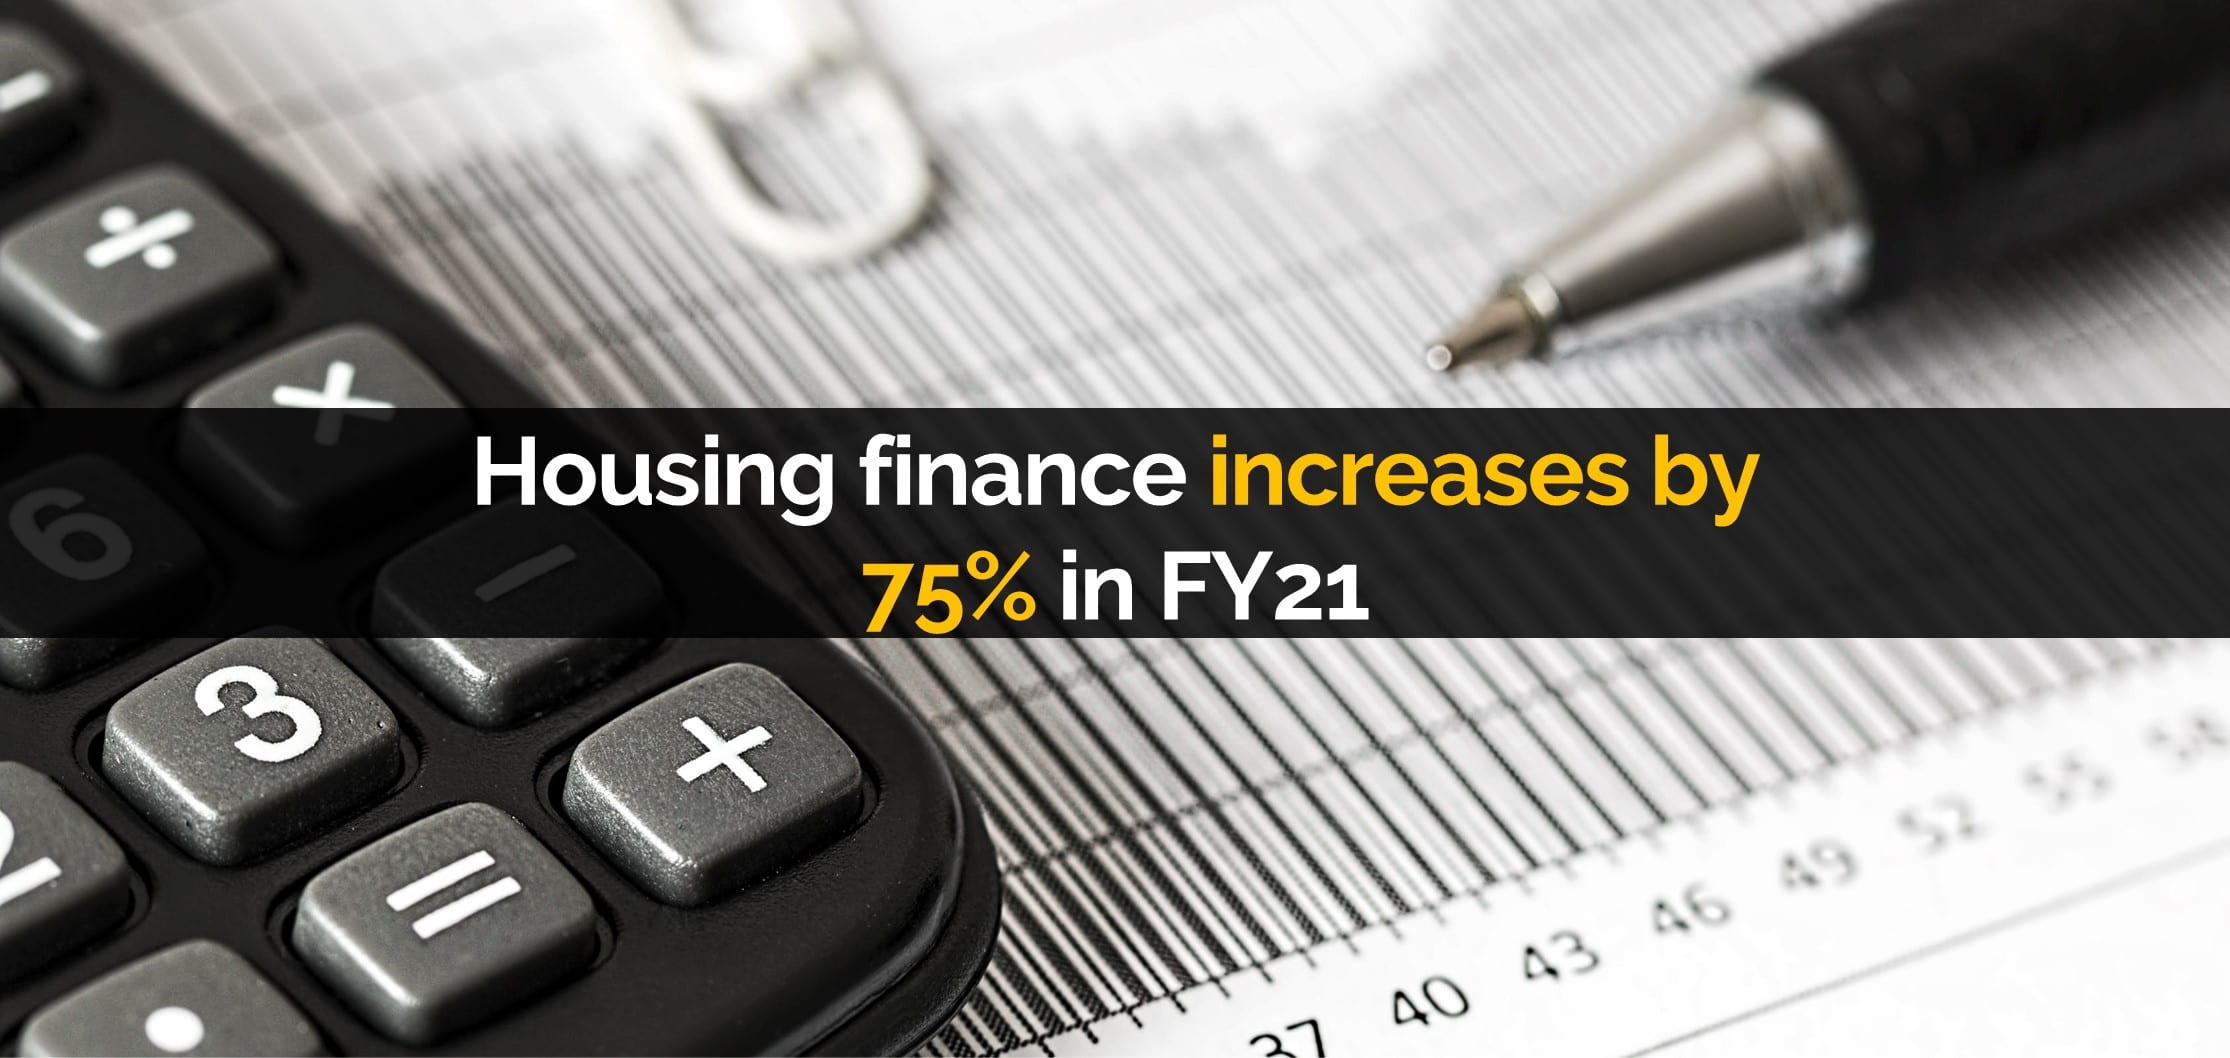 Housing finance increases by 75% in FY21